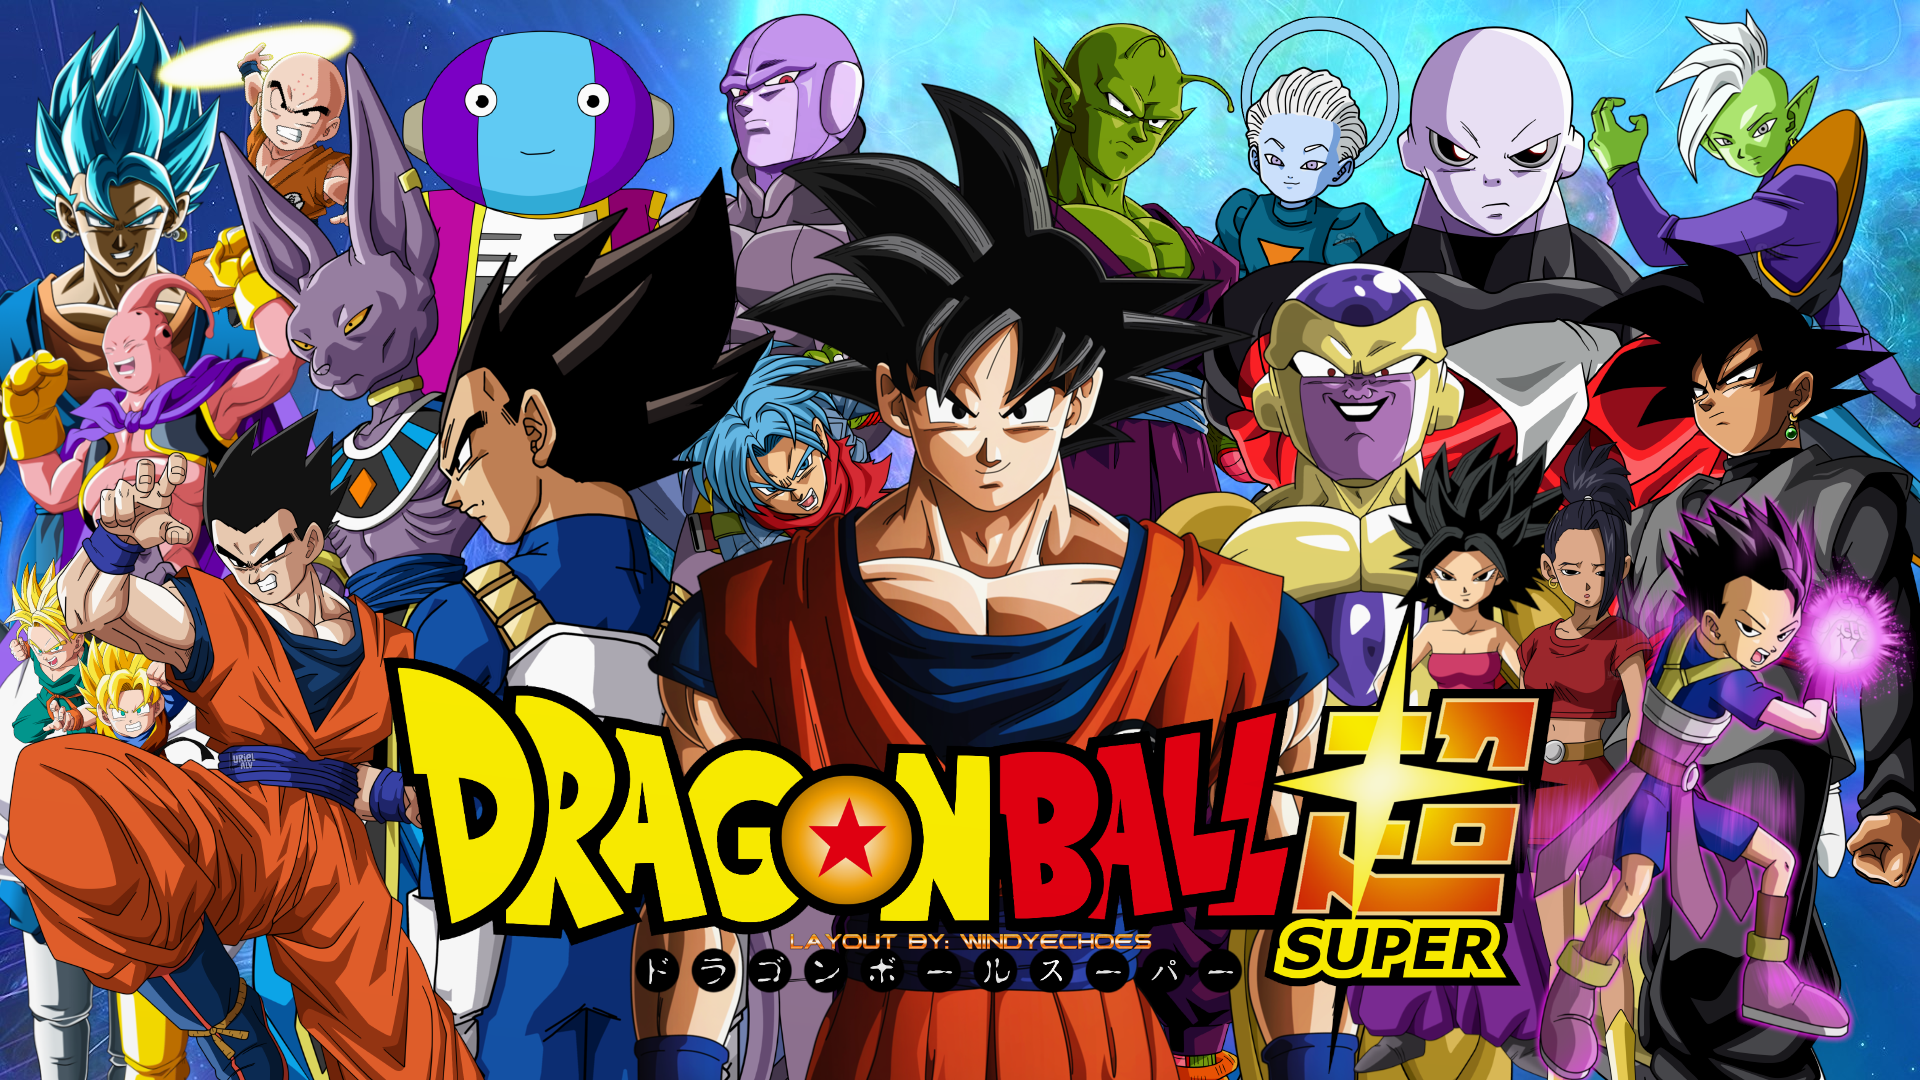 Dragon Ball Super Wallpaper Phone On Wallpaper 1080p HD ...